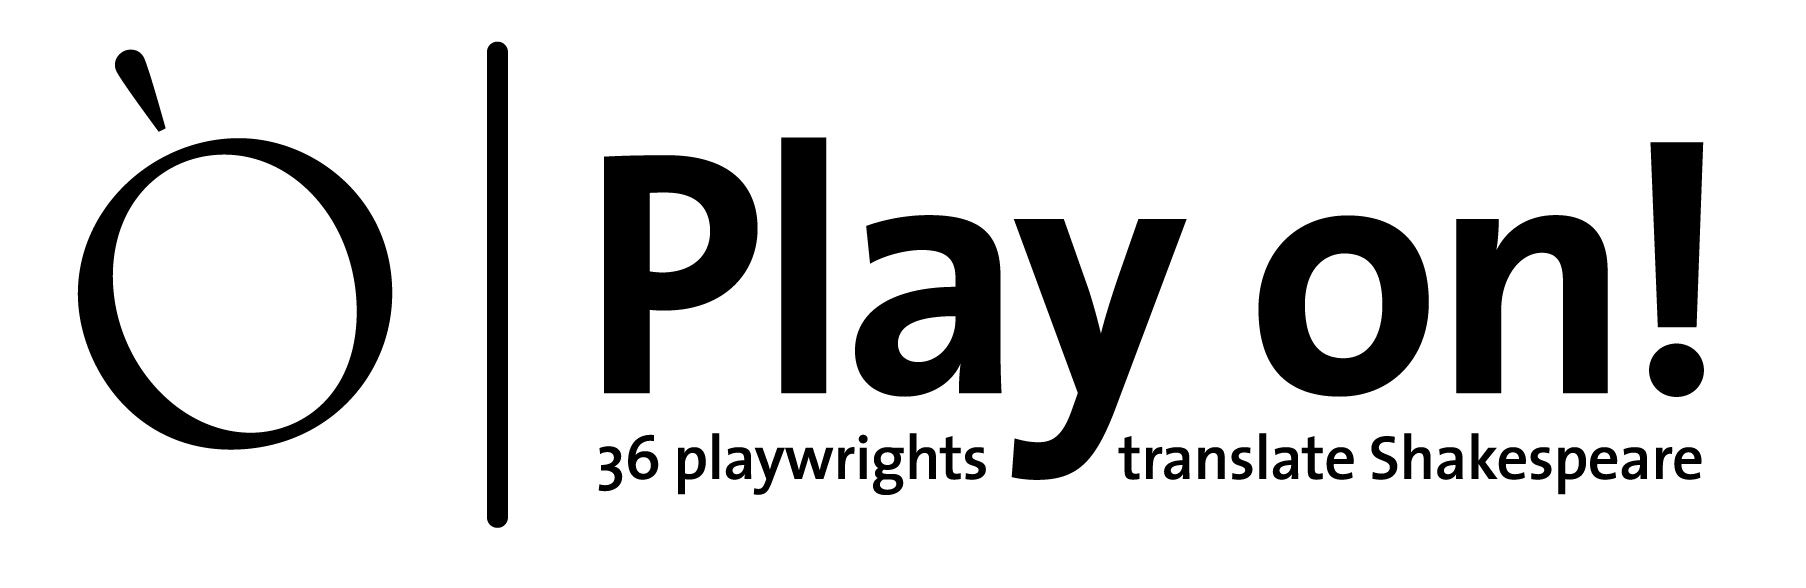 play_on_logo.jpg